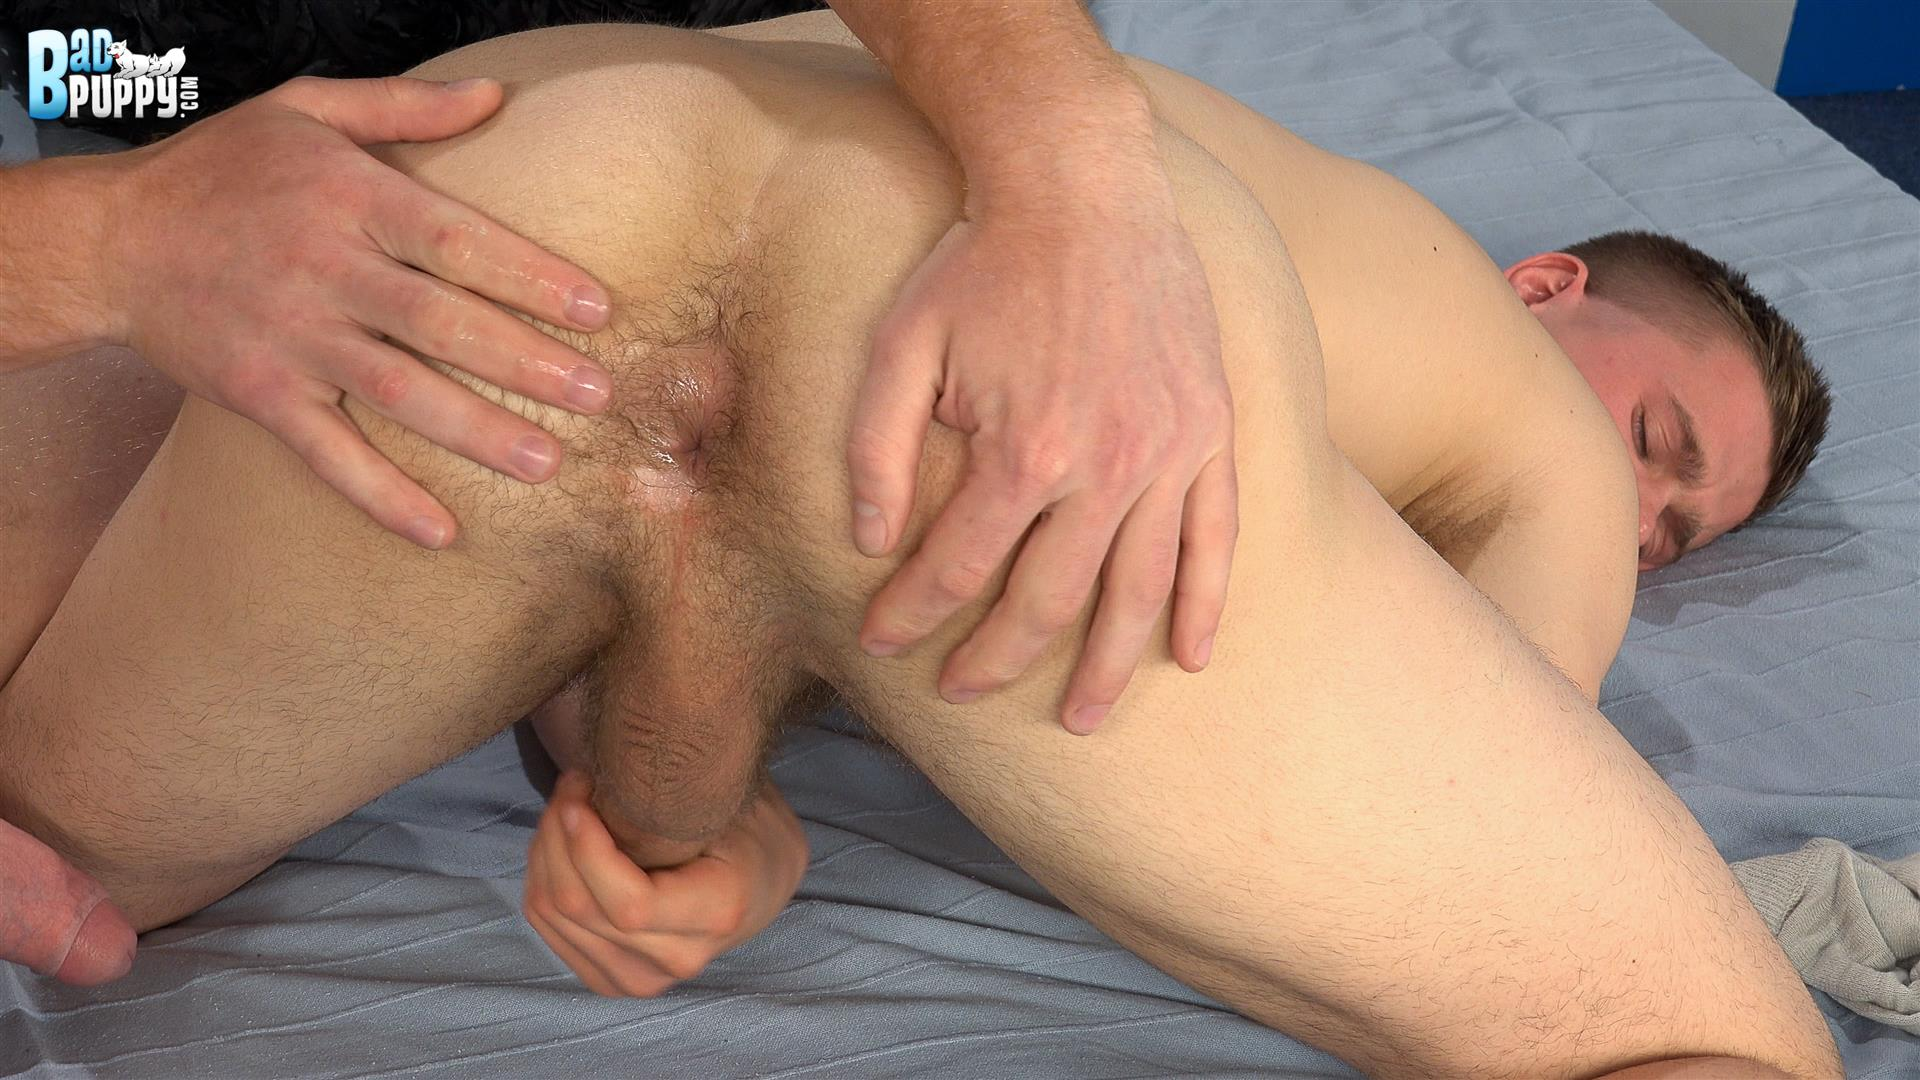 Badpuppy Tom Vojak and Peter Filo Straight Redheaded Guy With Big Uncut Cock Fucking Buddy Amateur Gay Porn 19 Straight Ginger With A Big Uncut Cock Fucking His Best Friend